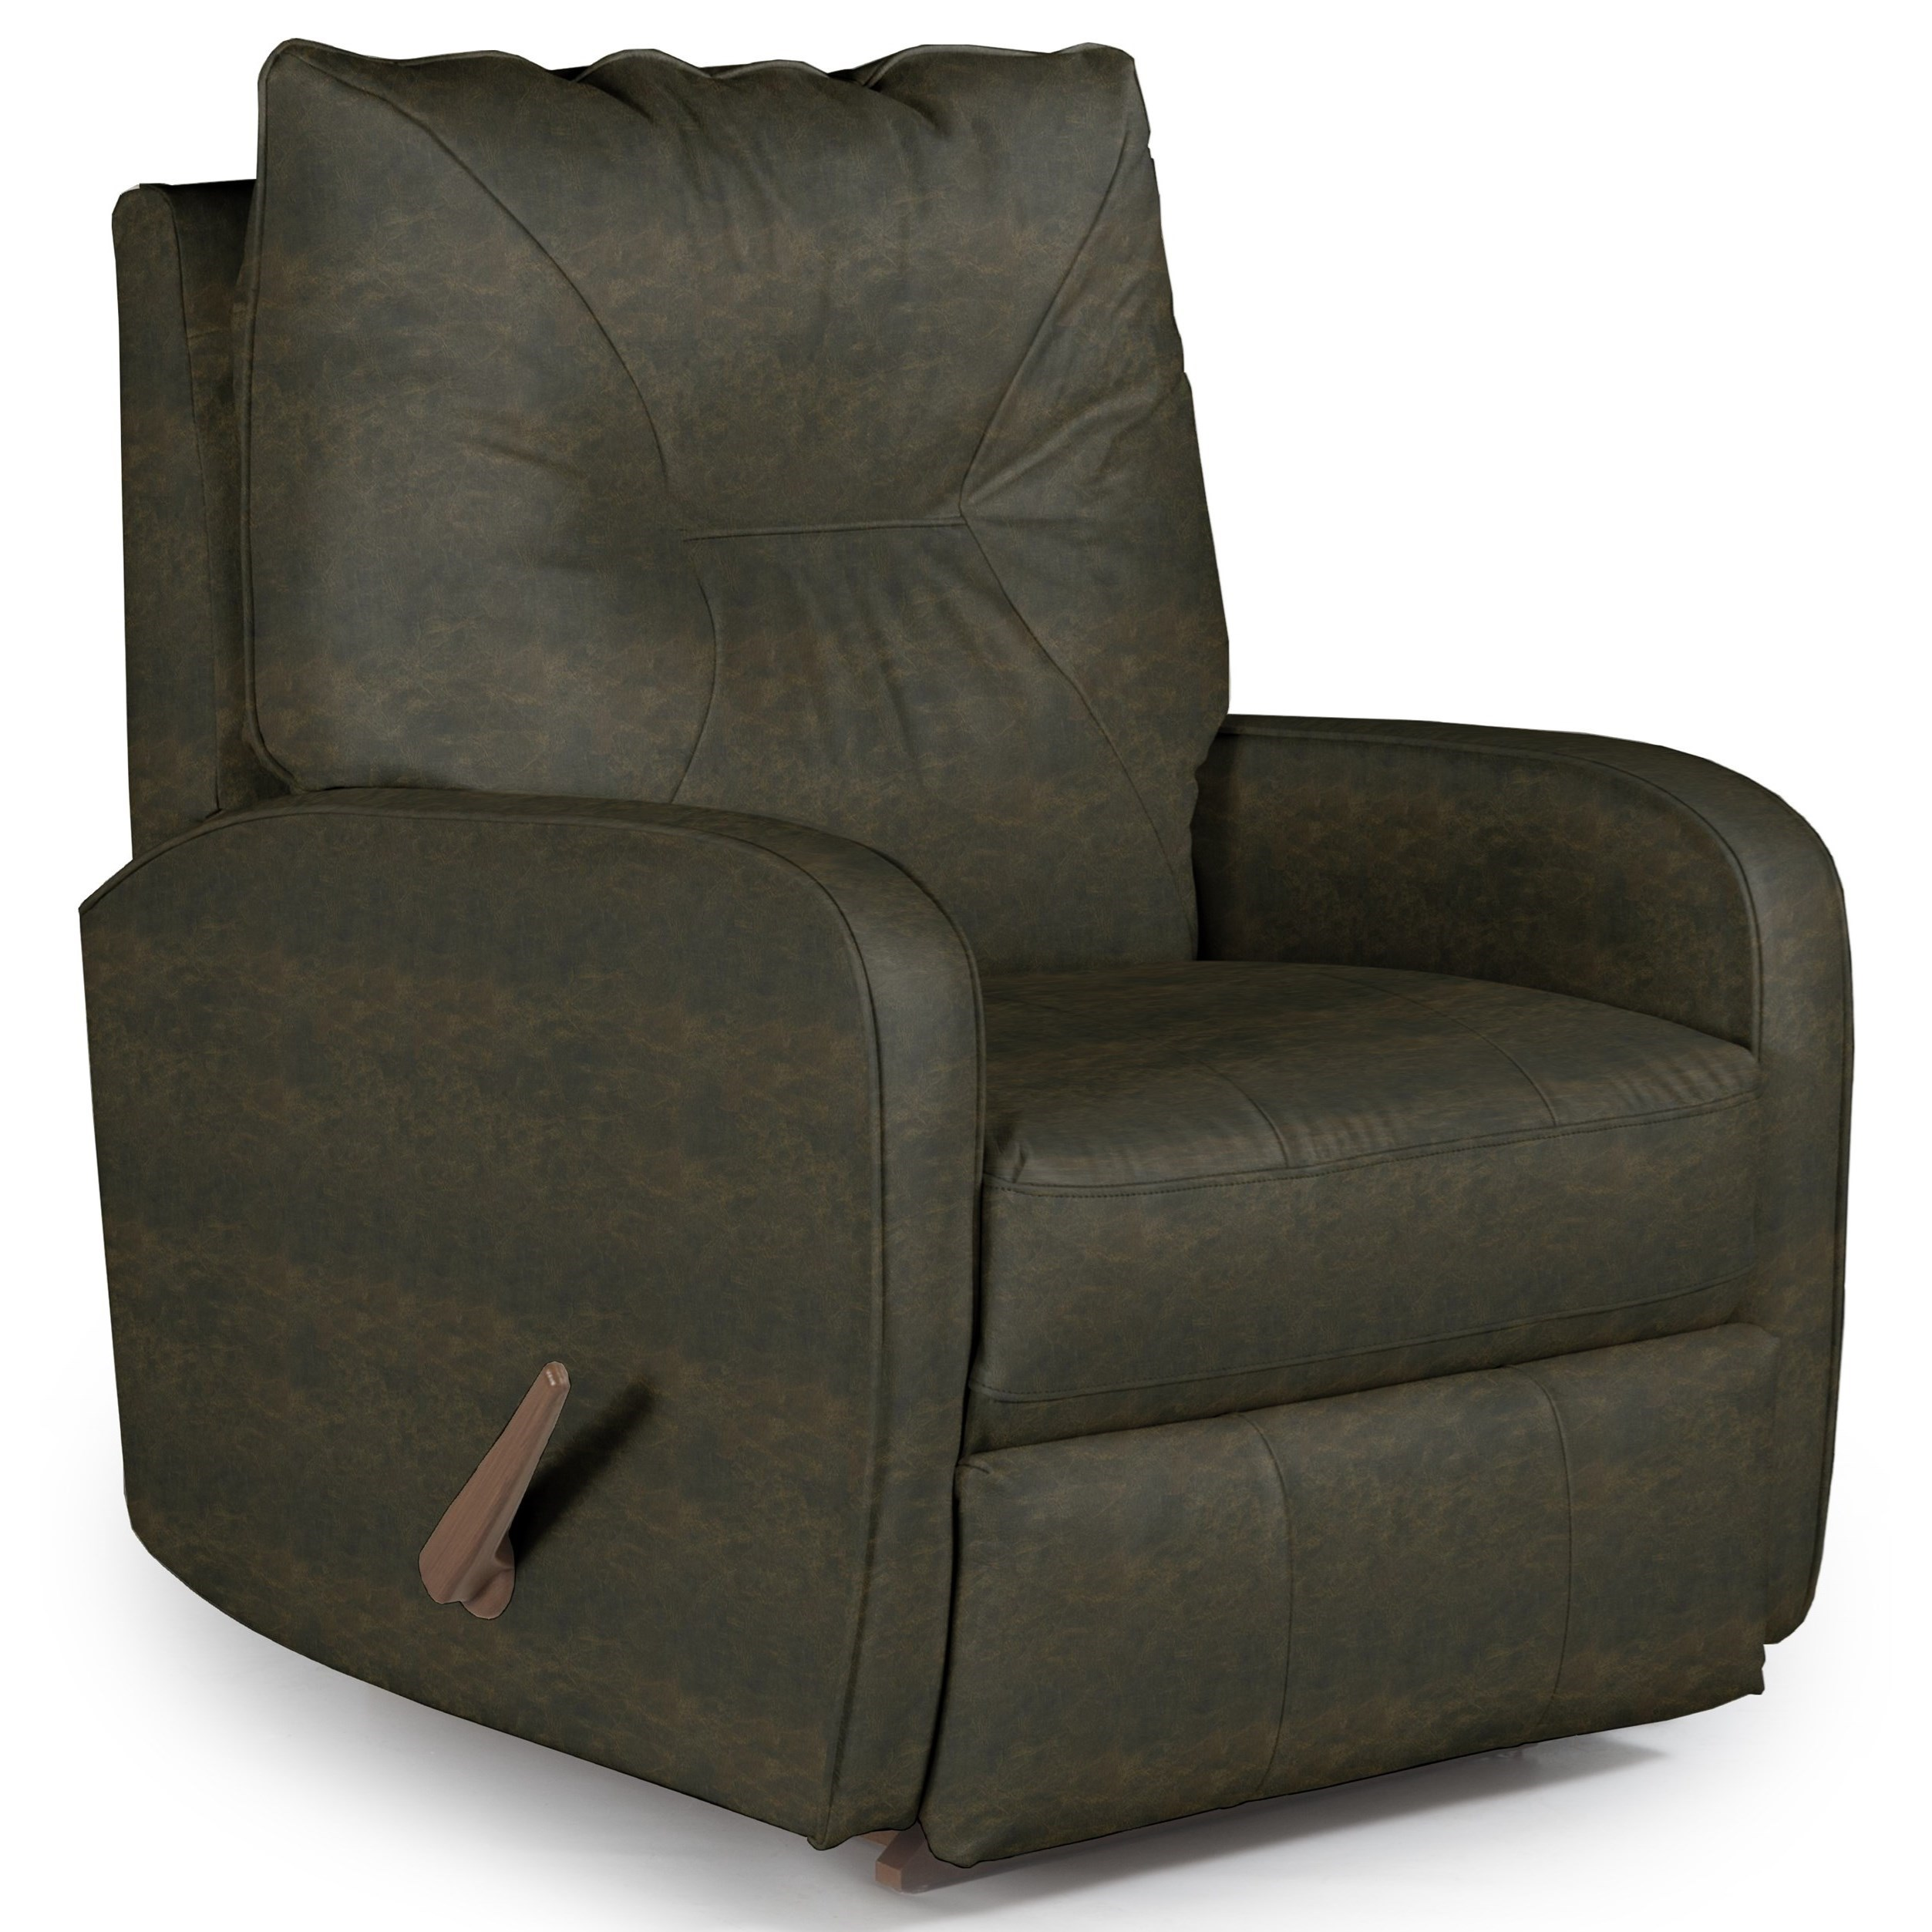 Best home furnishings recliners medium contemporary ingall rocker recliner in sleek modern - Stylish rocker recliner ...